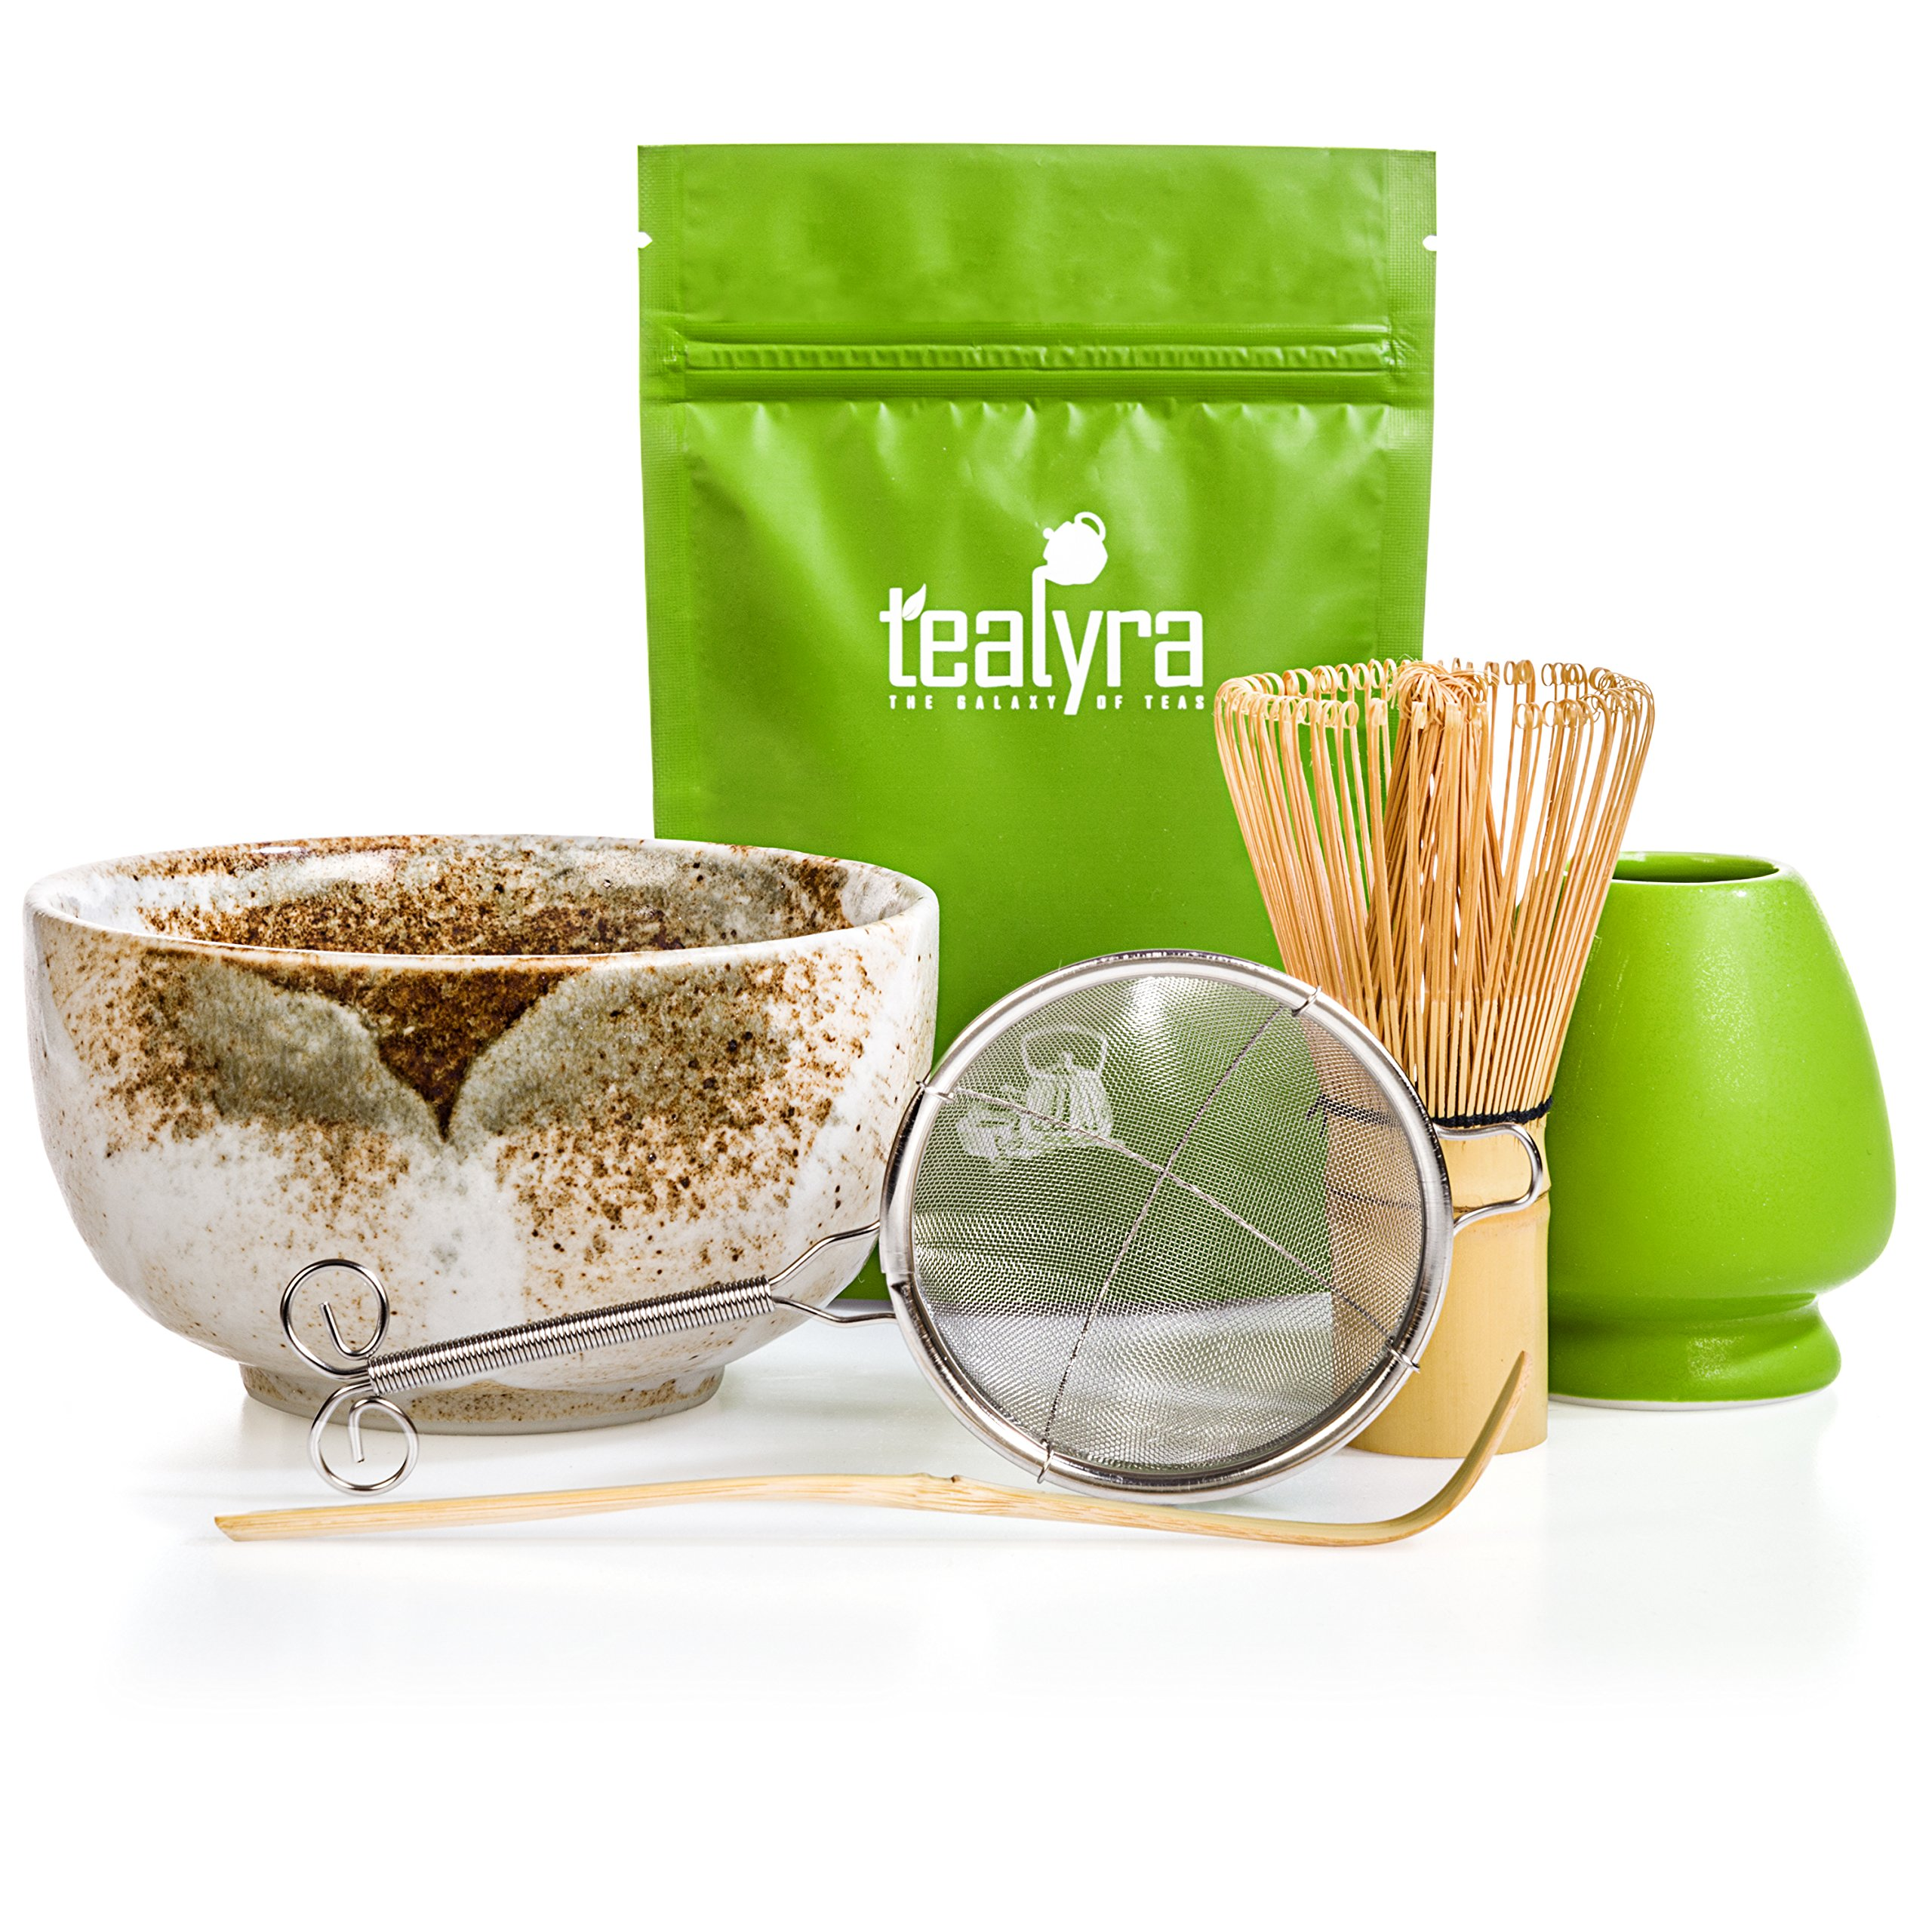 Tealyra - Matcha Tea Ceremony Start Up Kit - Complete Matcha Green Tea Gift Set - Premium Matcha Powder - Japanese Made Beige Bowl - Bamboo Whisk and Scoop - Holder - Sifter - Gift Box by Tealyra